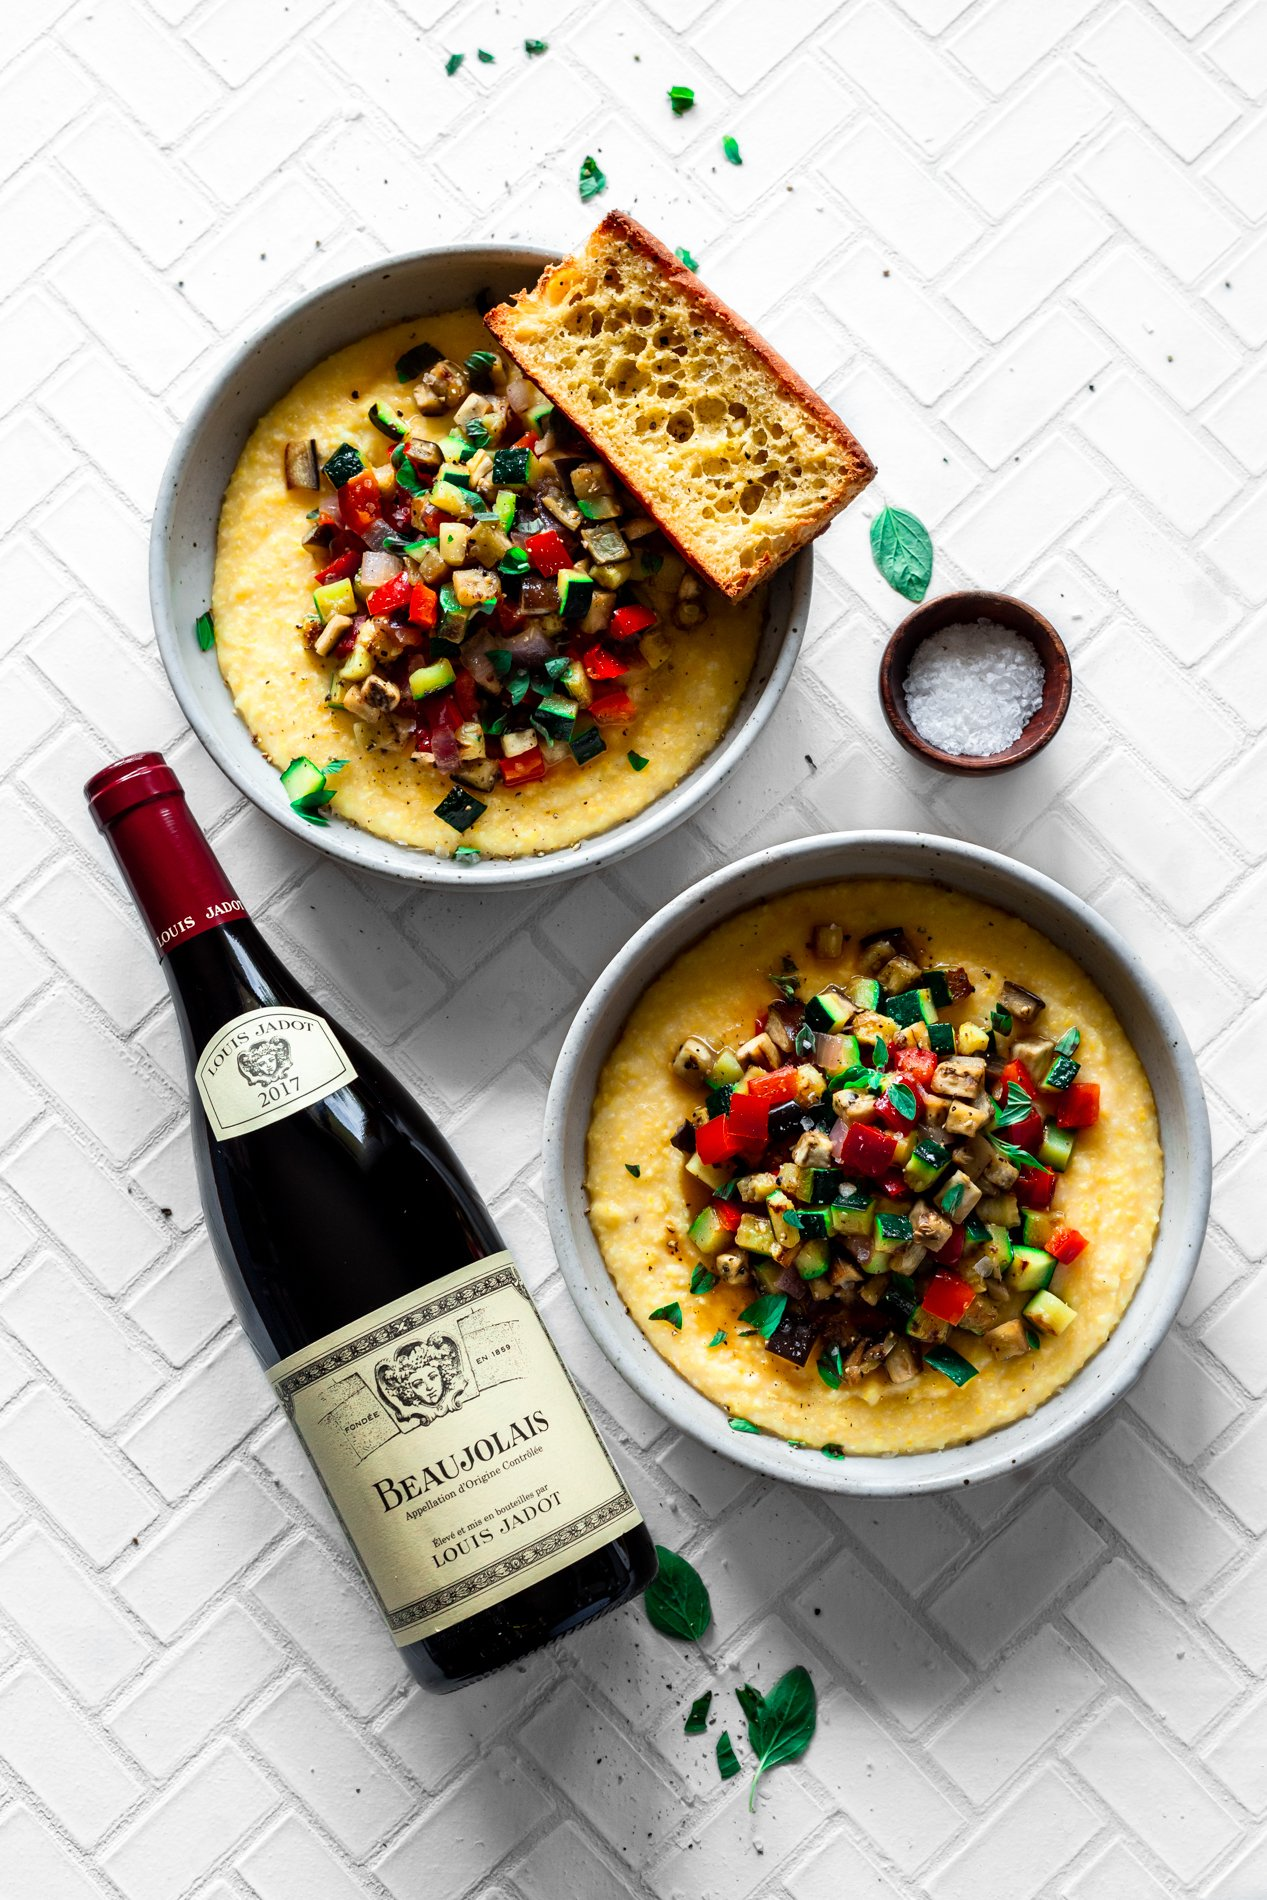 overhead view of two bowls of easy ratatouille recipe with creamy polenta, and a bottle of wine on its side